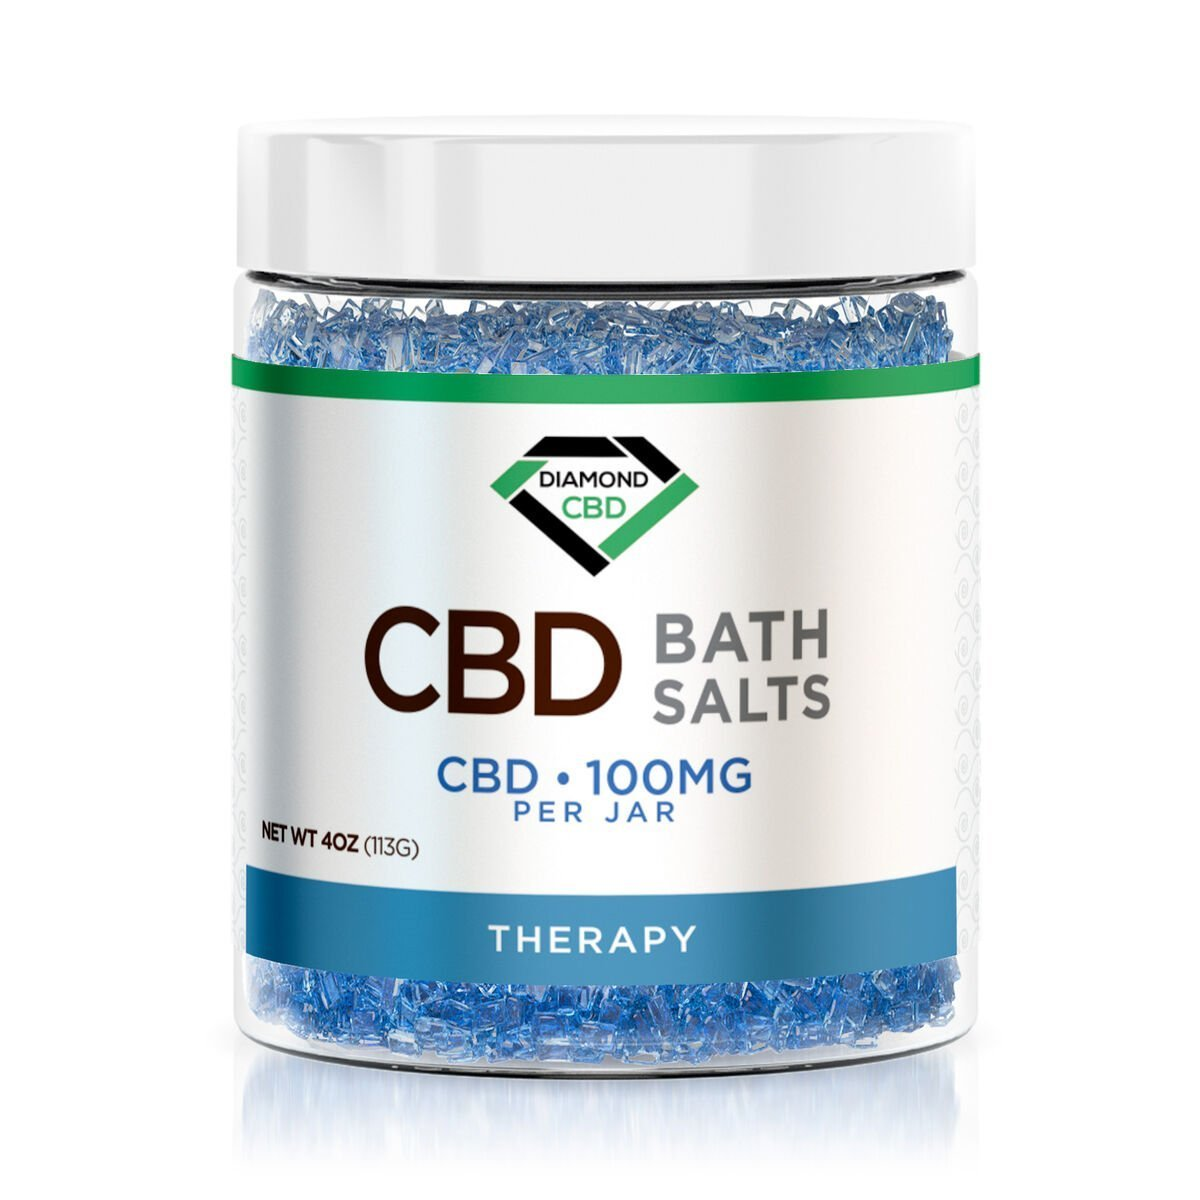 Diamond CBD Bath Salts Therapy